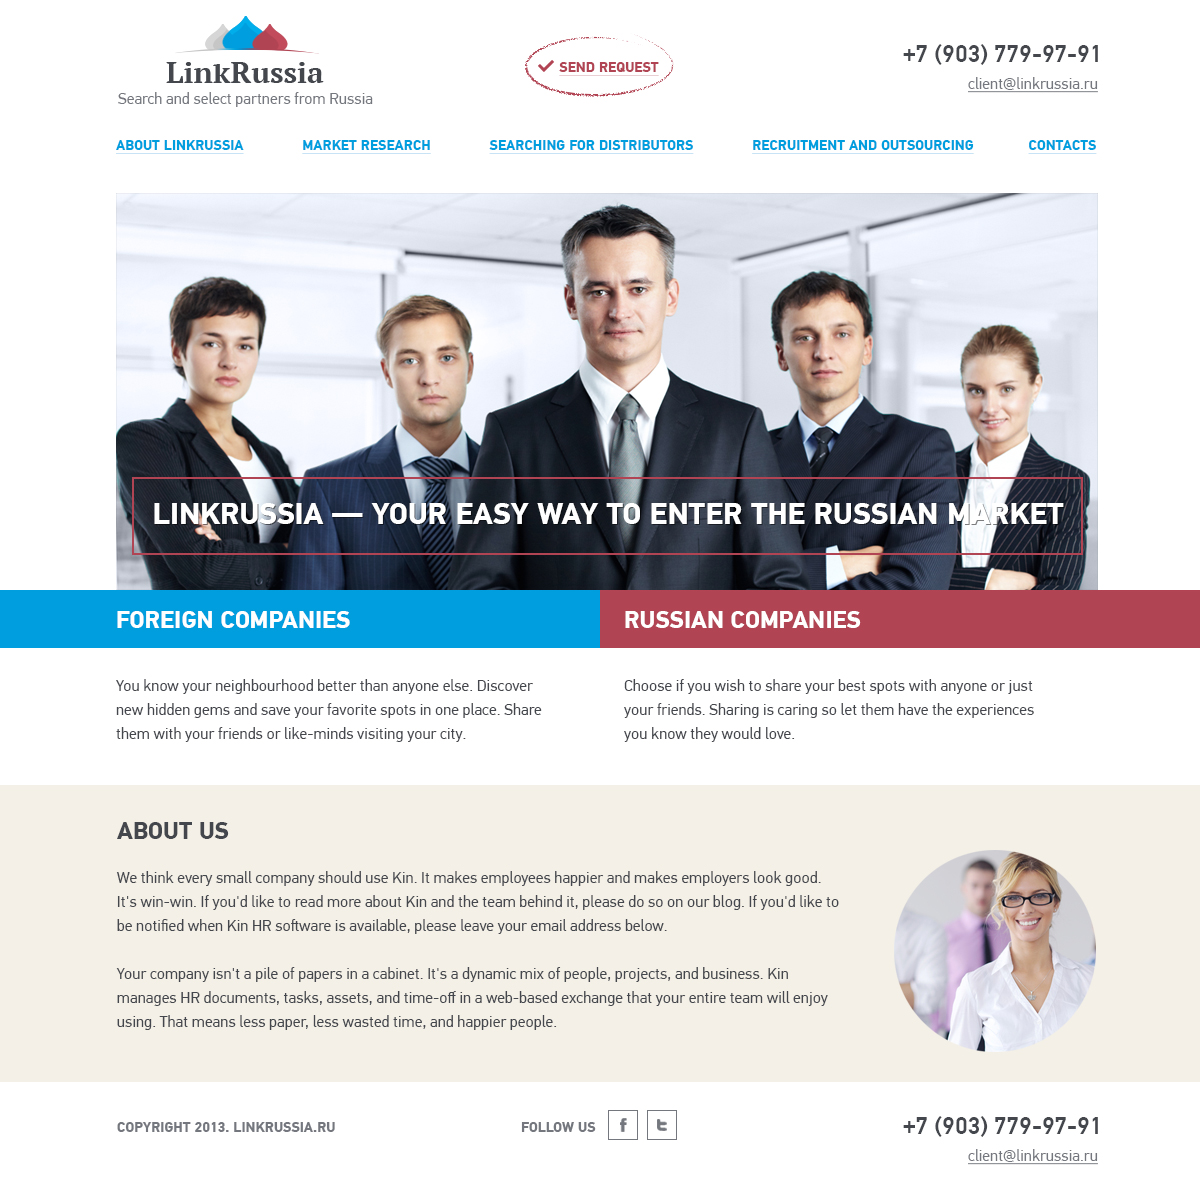 LinkRussia - easy way to enter the Russian market